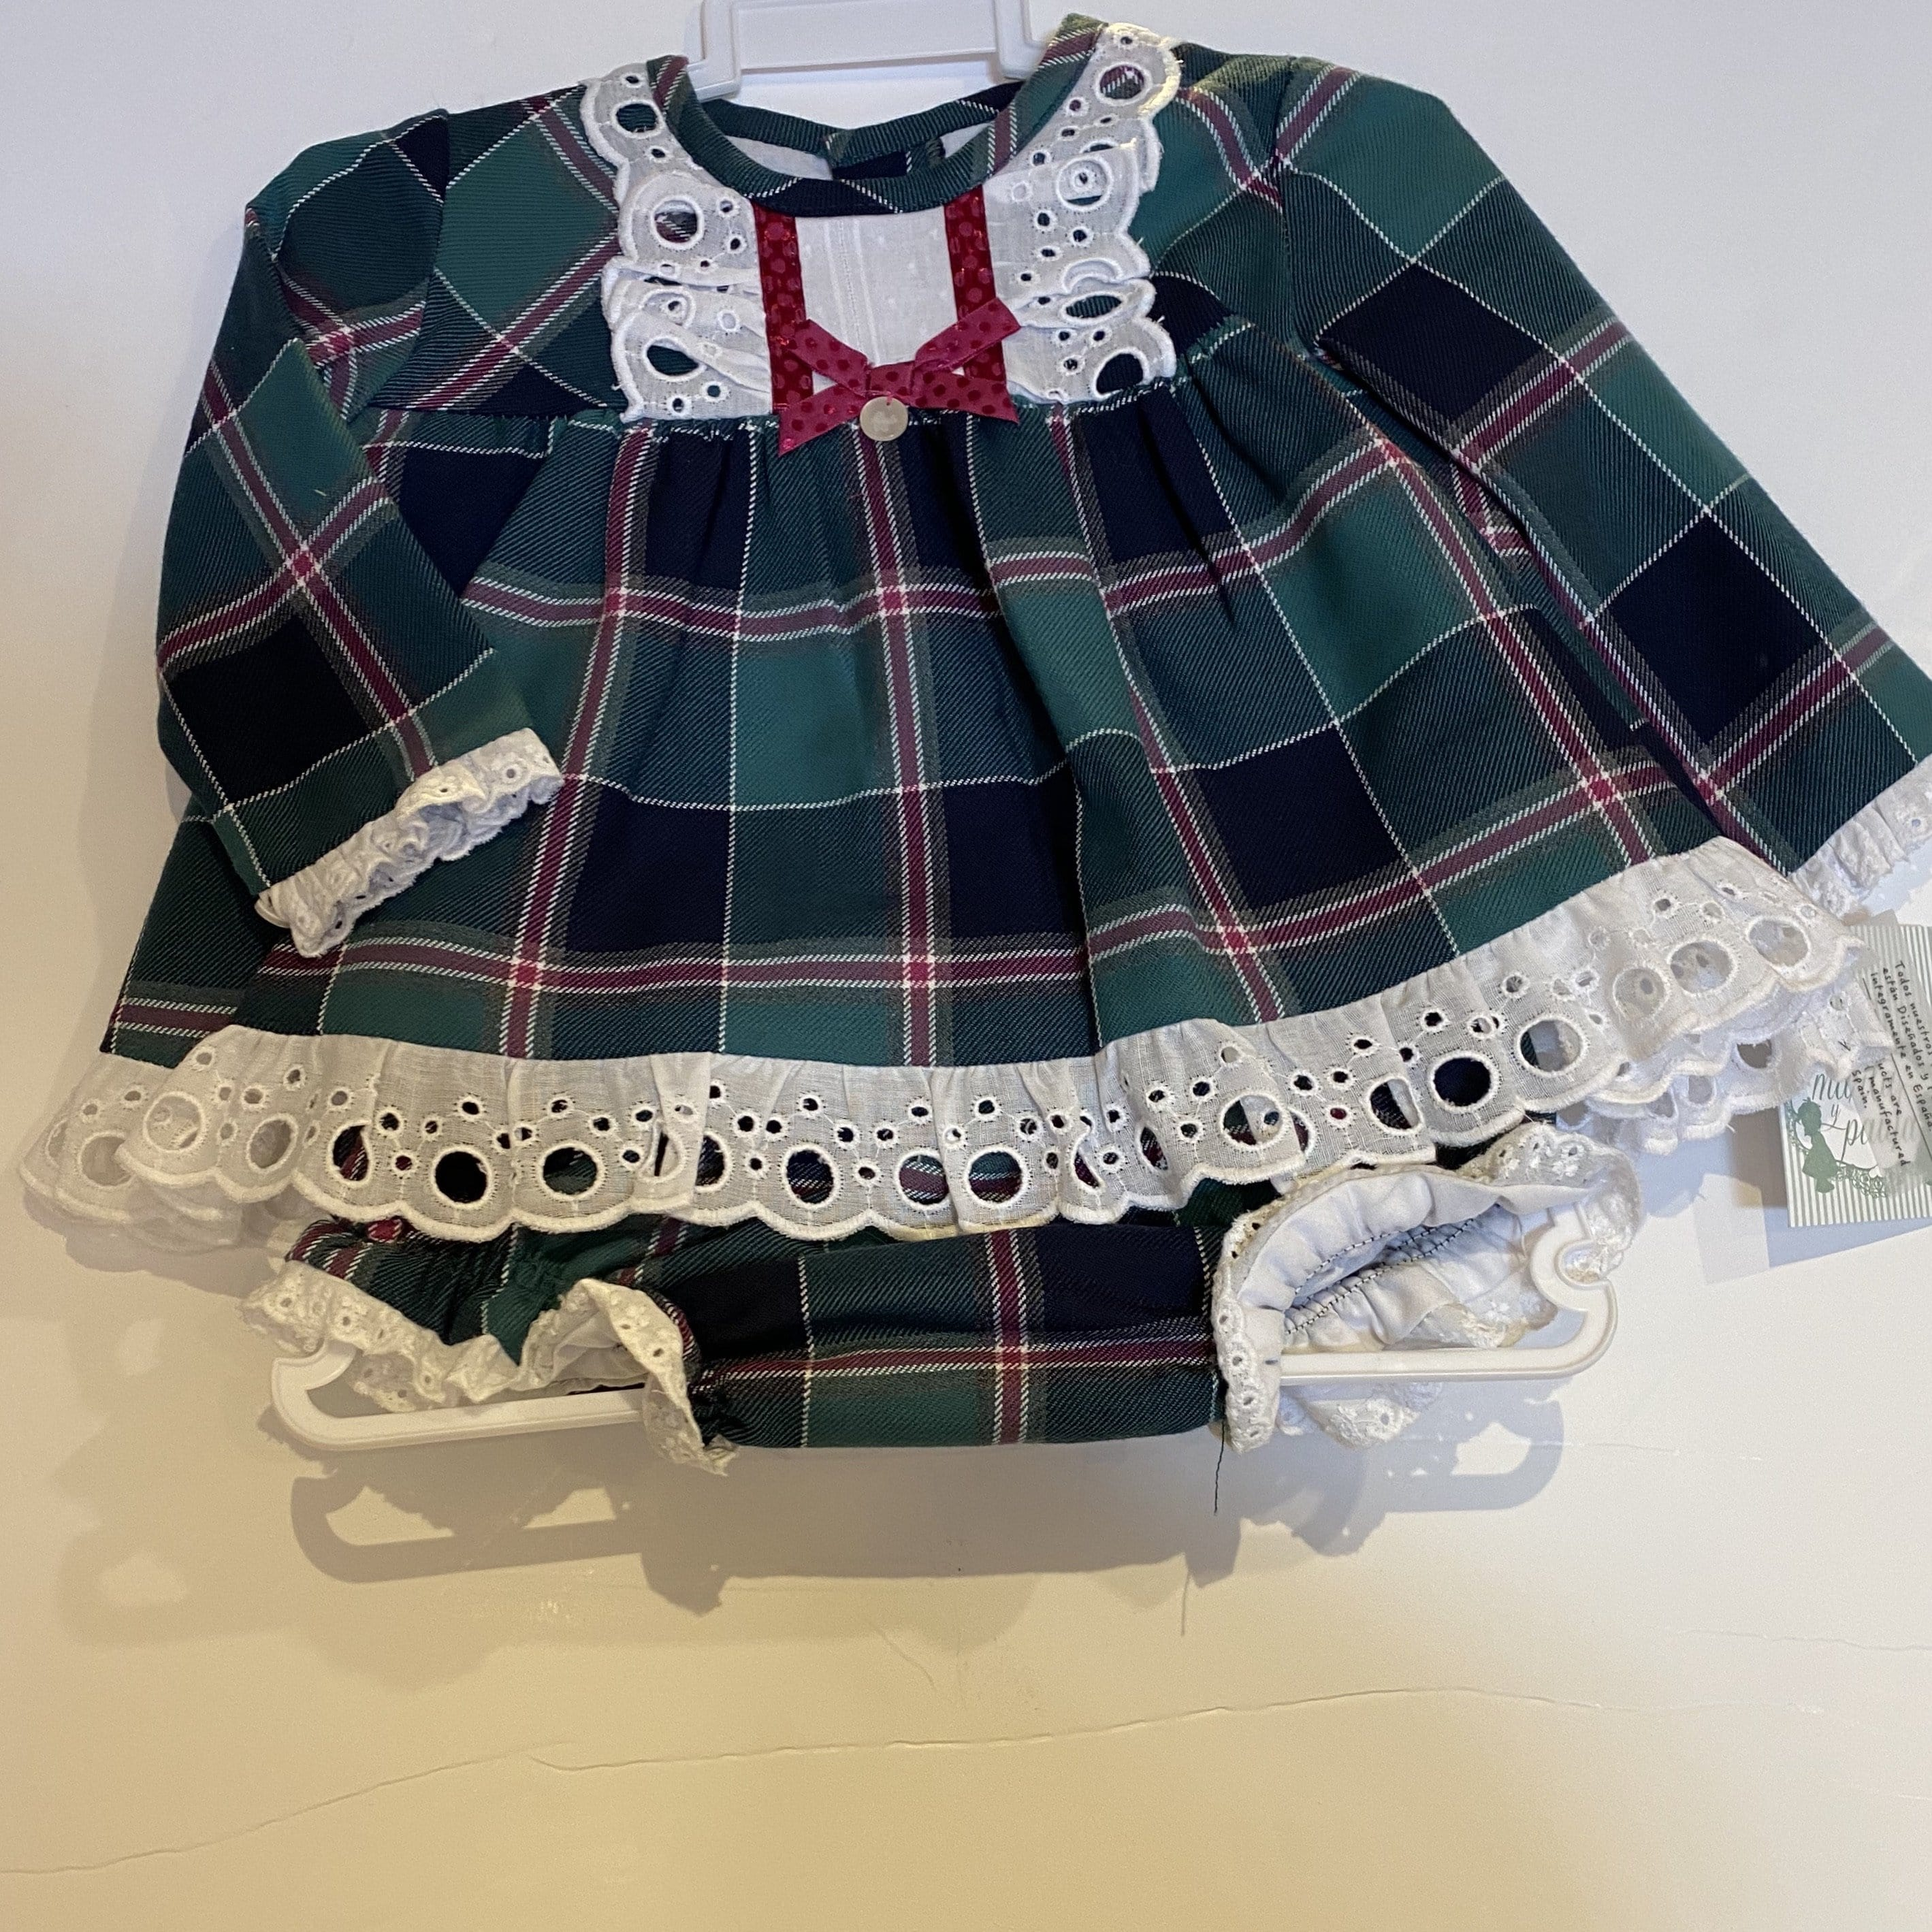 MARTA Y PAULA PLUM TARTAN DRESS WITH BONNET AND KNICKERS